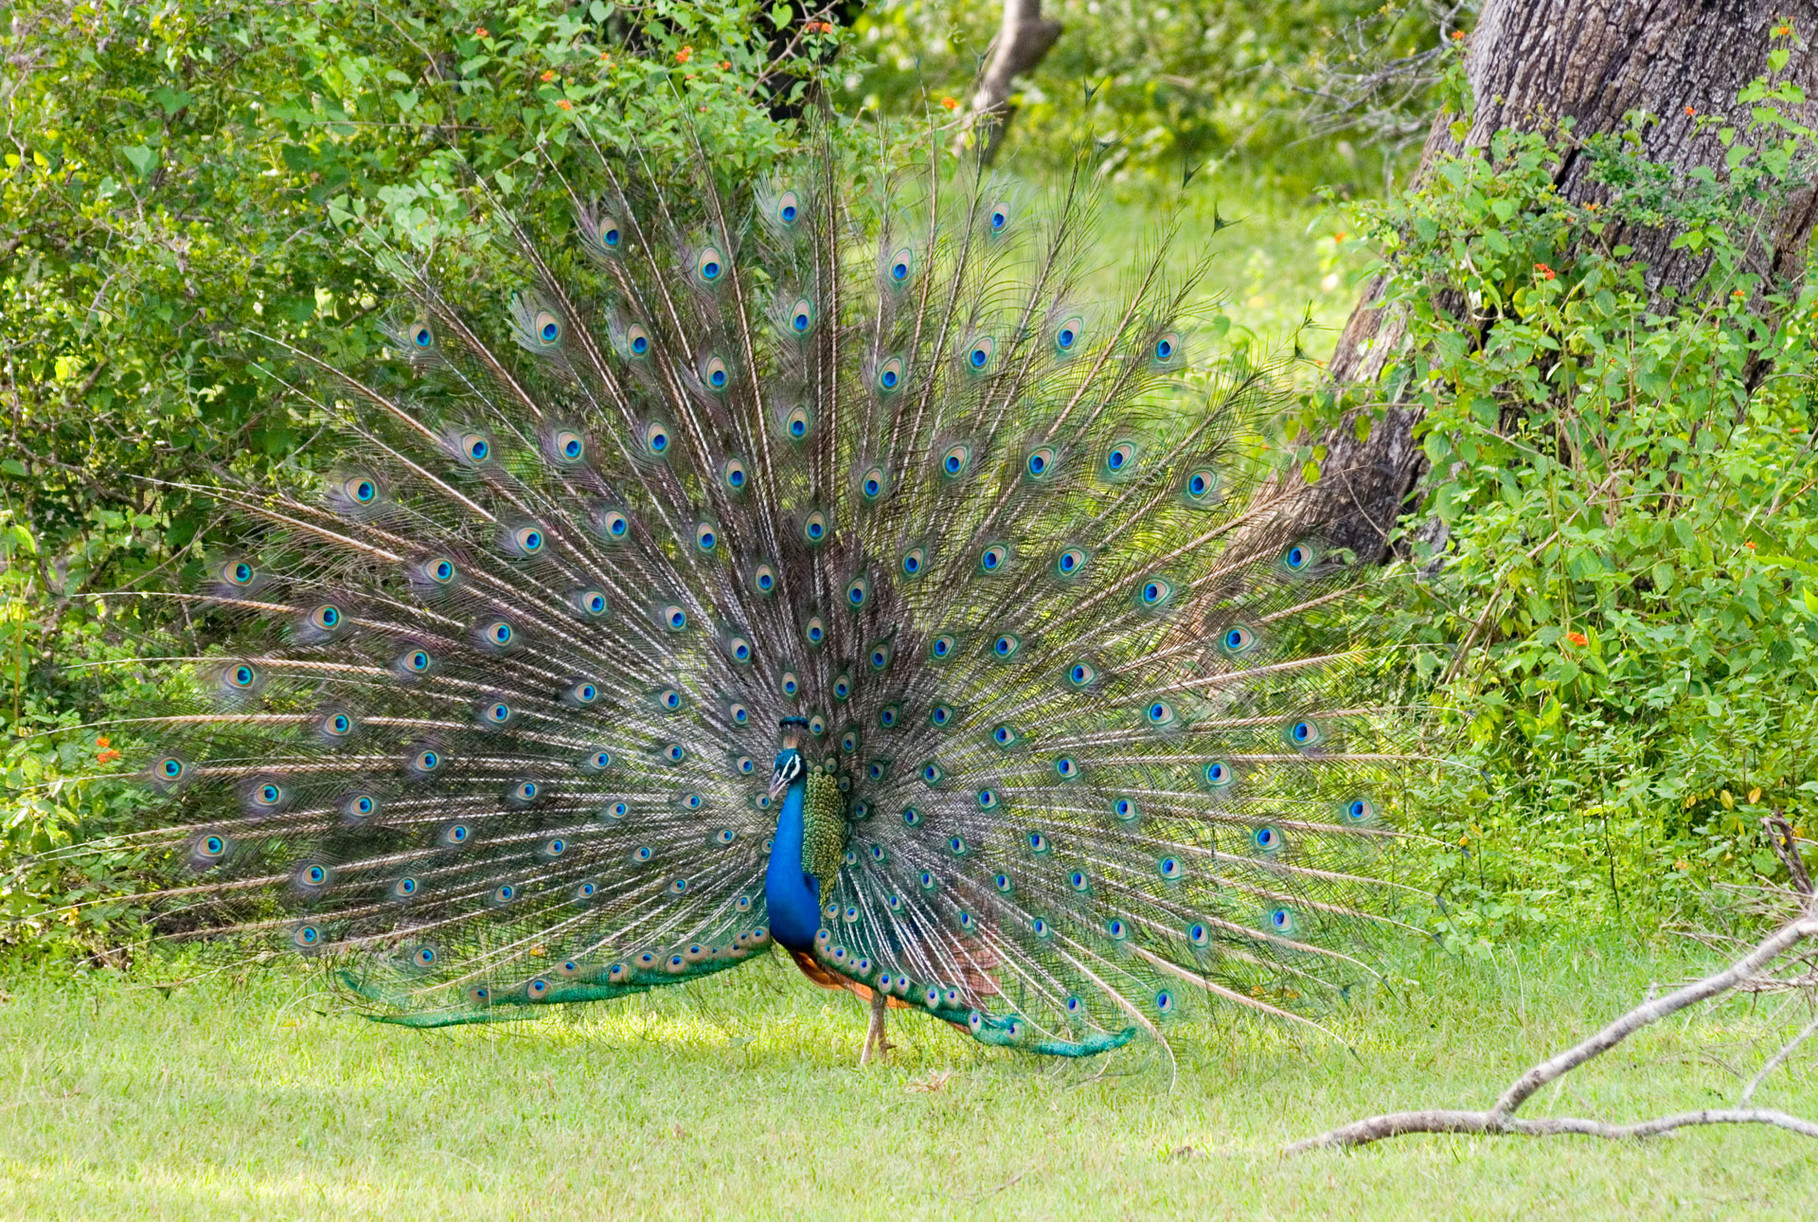 Peacock, Yala Nationalpark